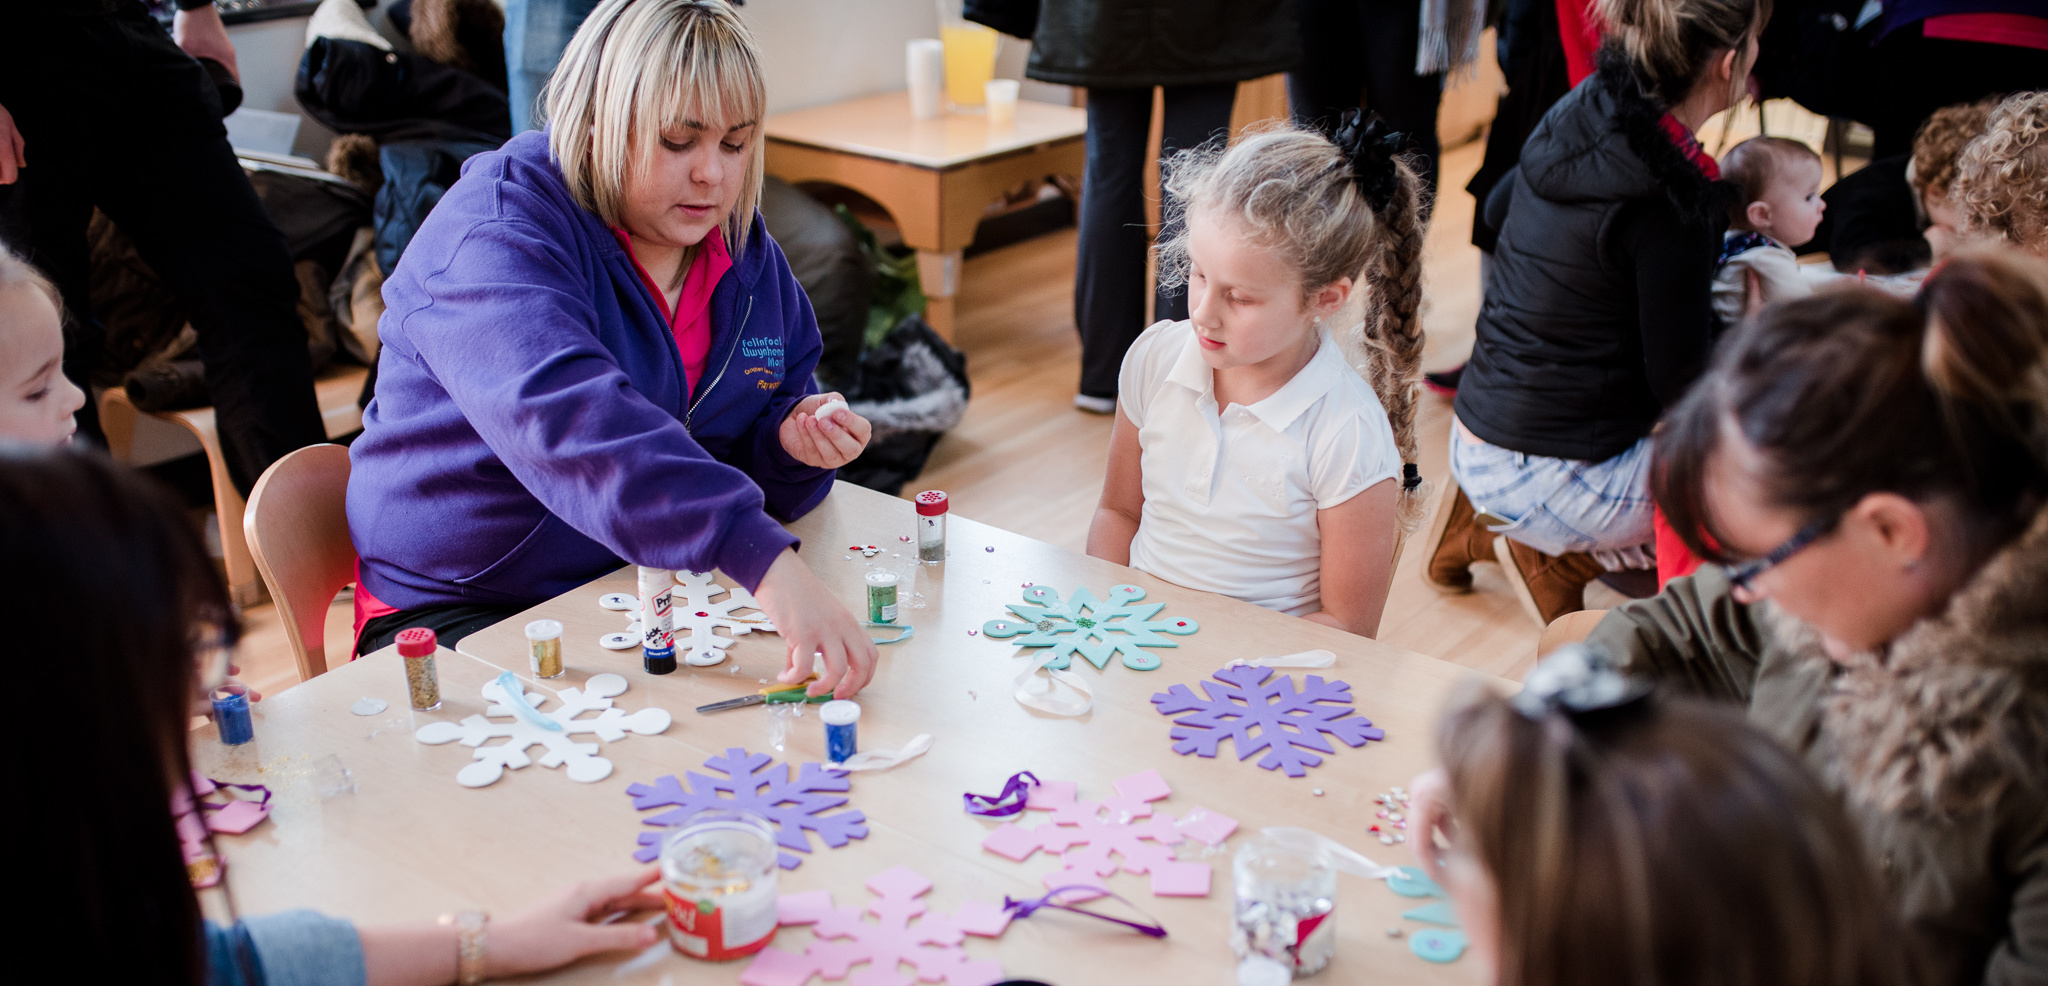 Craft session at Family Centre